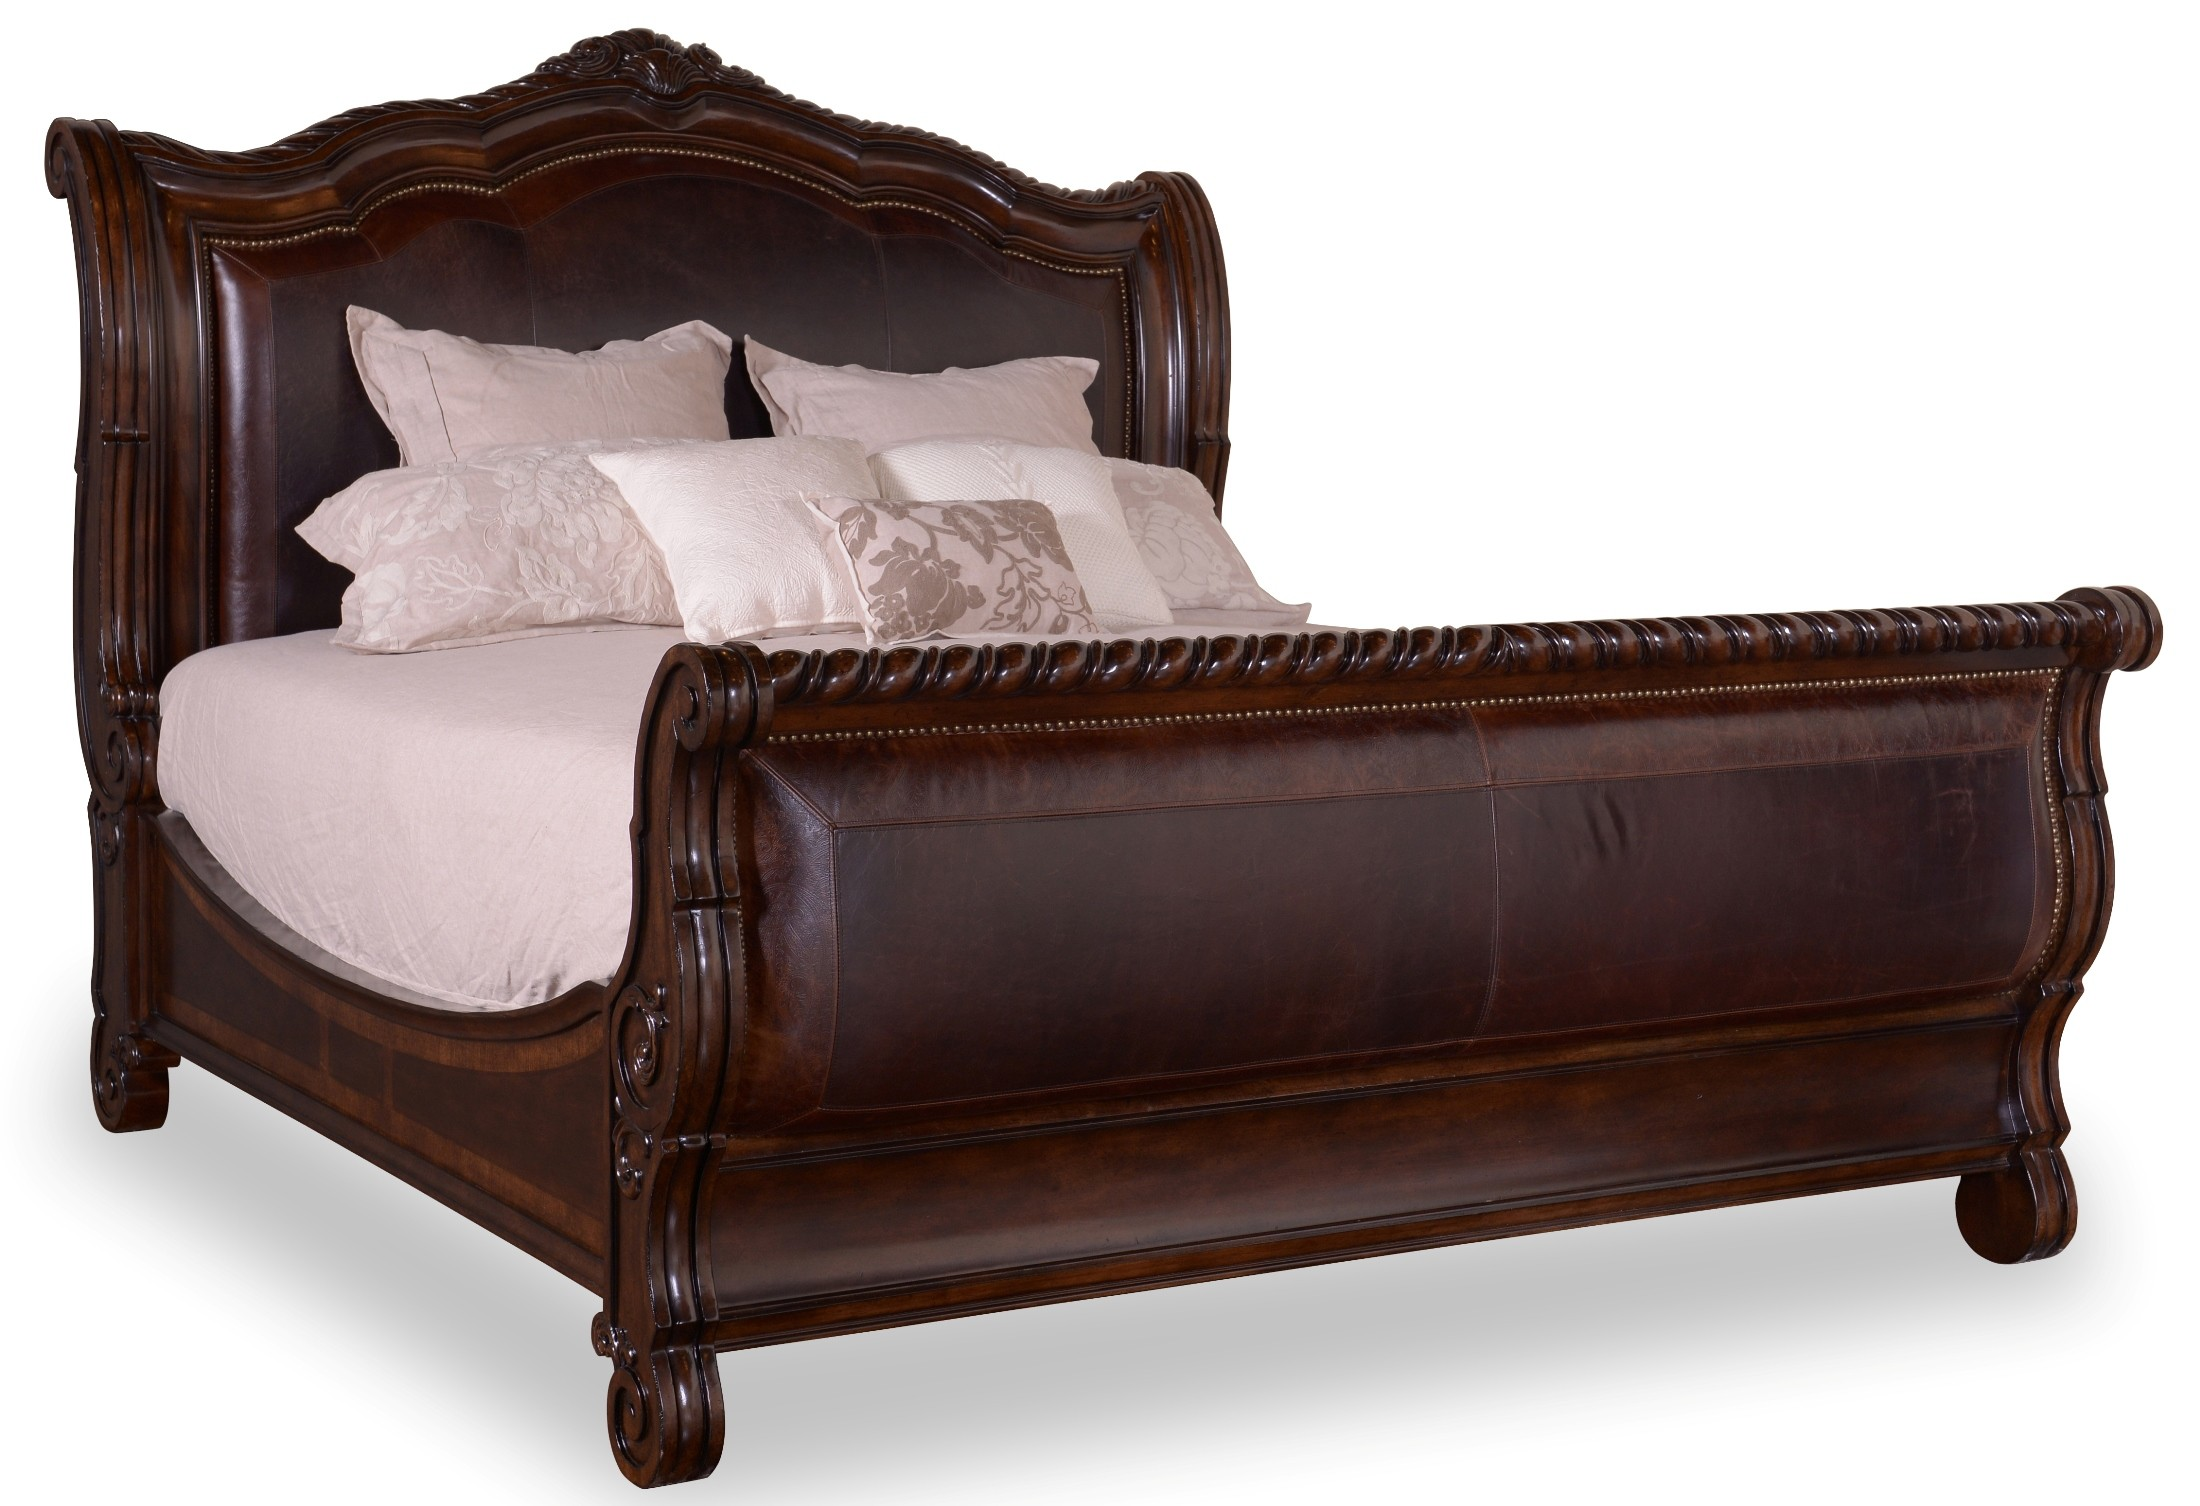 Valencia Queen Upholstered Sleigh Bed From Art 209145